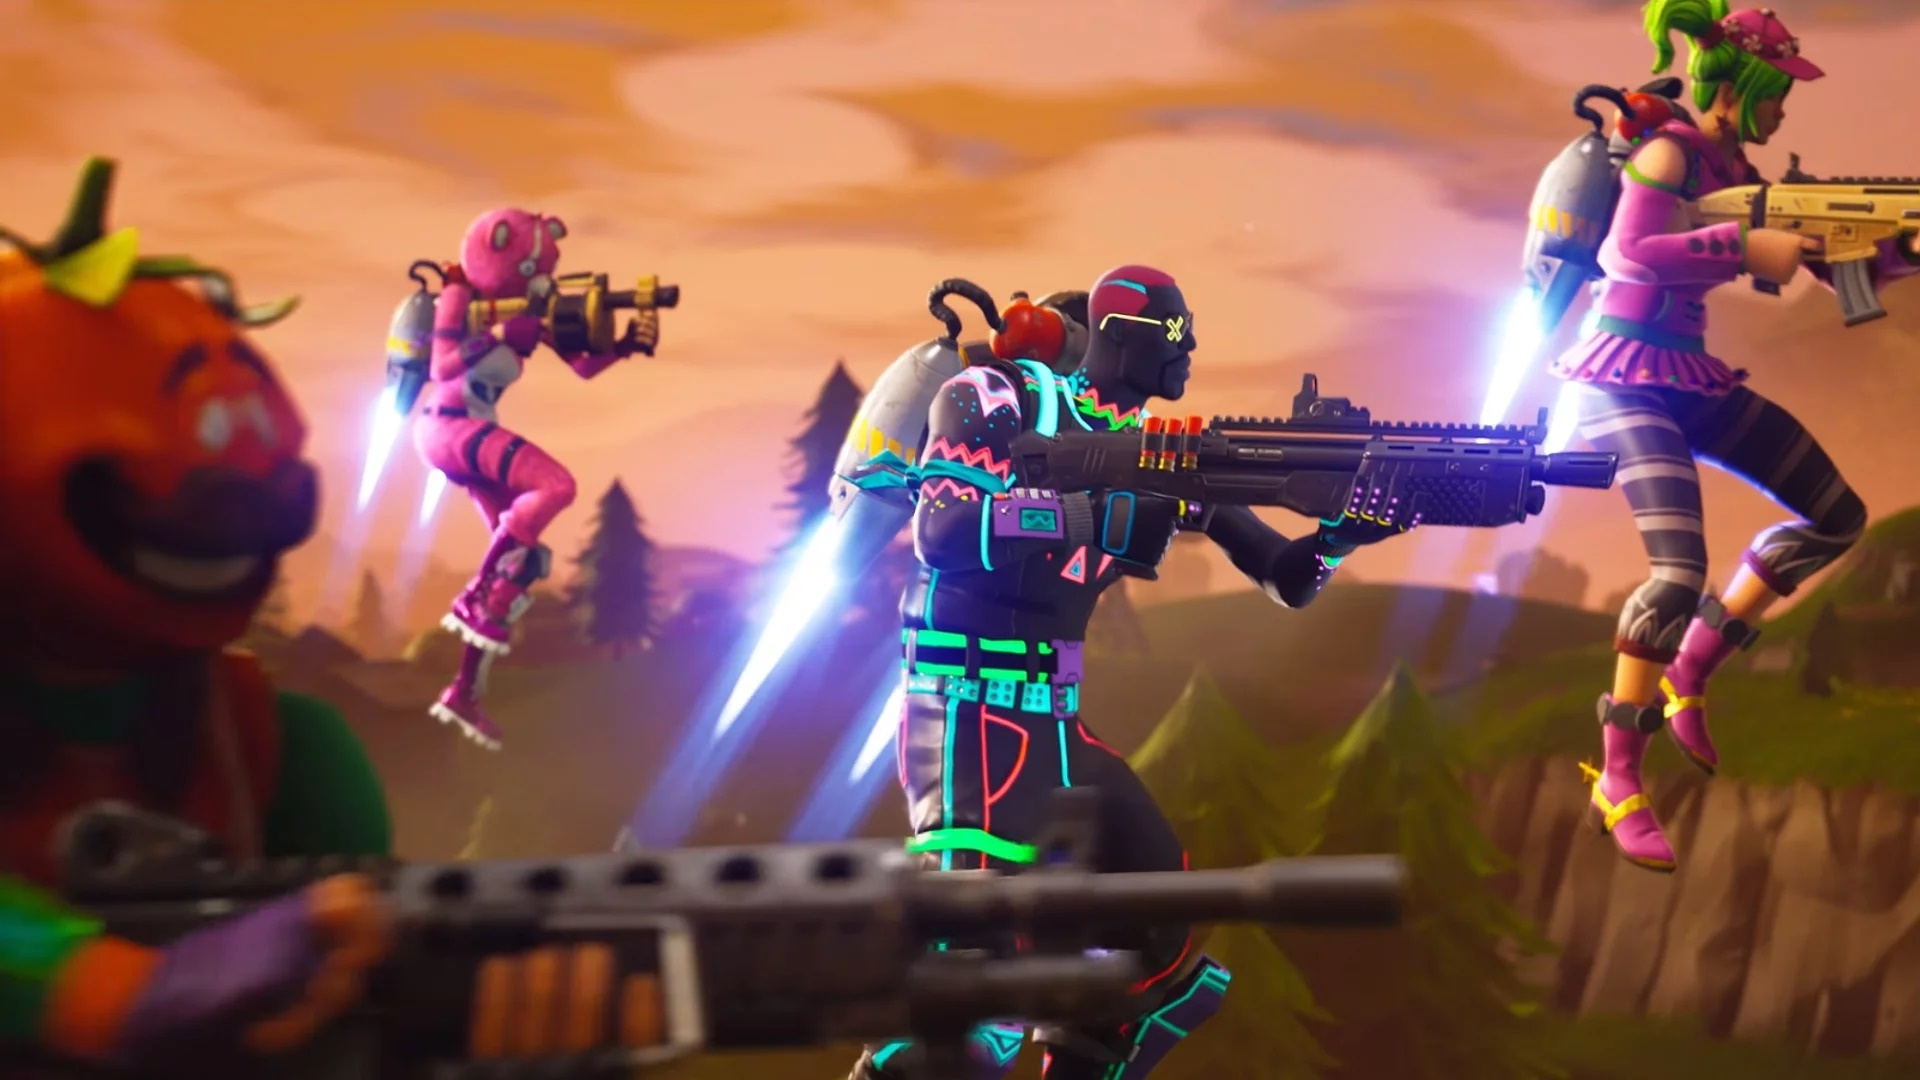 An Epic Bullet Glitch Has Been Discovered In The Switch